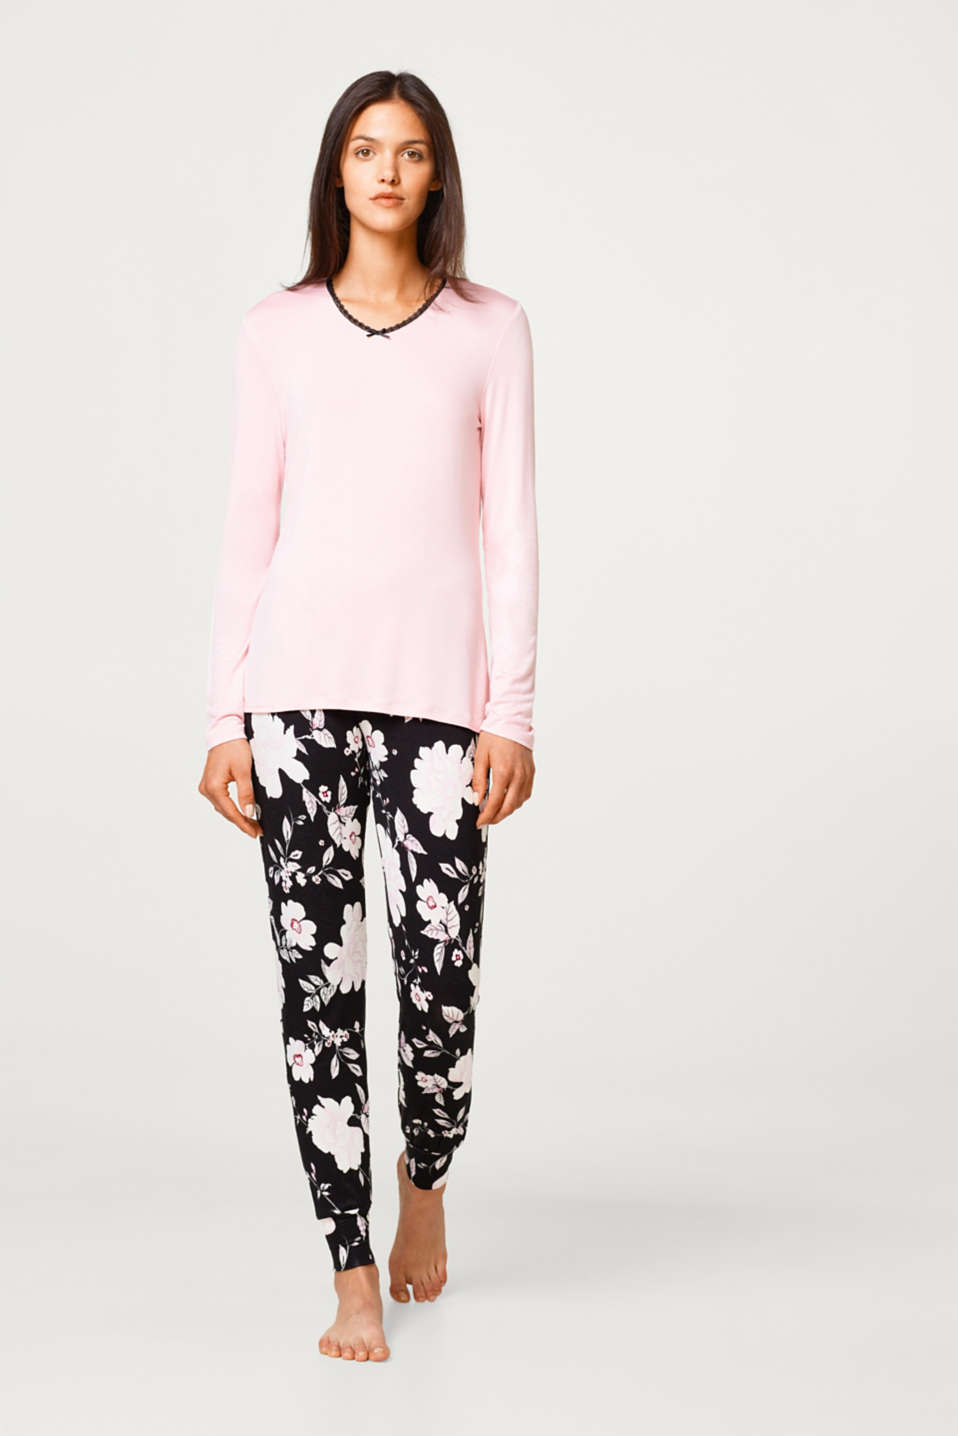 Esprit - Pyjamas consisting of a V-neck long sleeve top and flowery bottoms